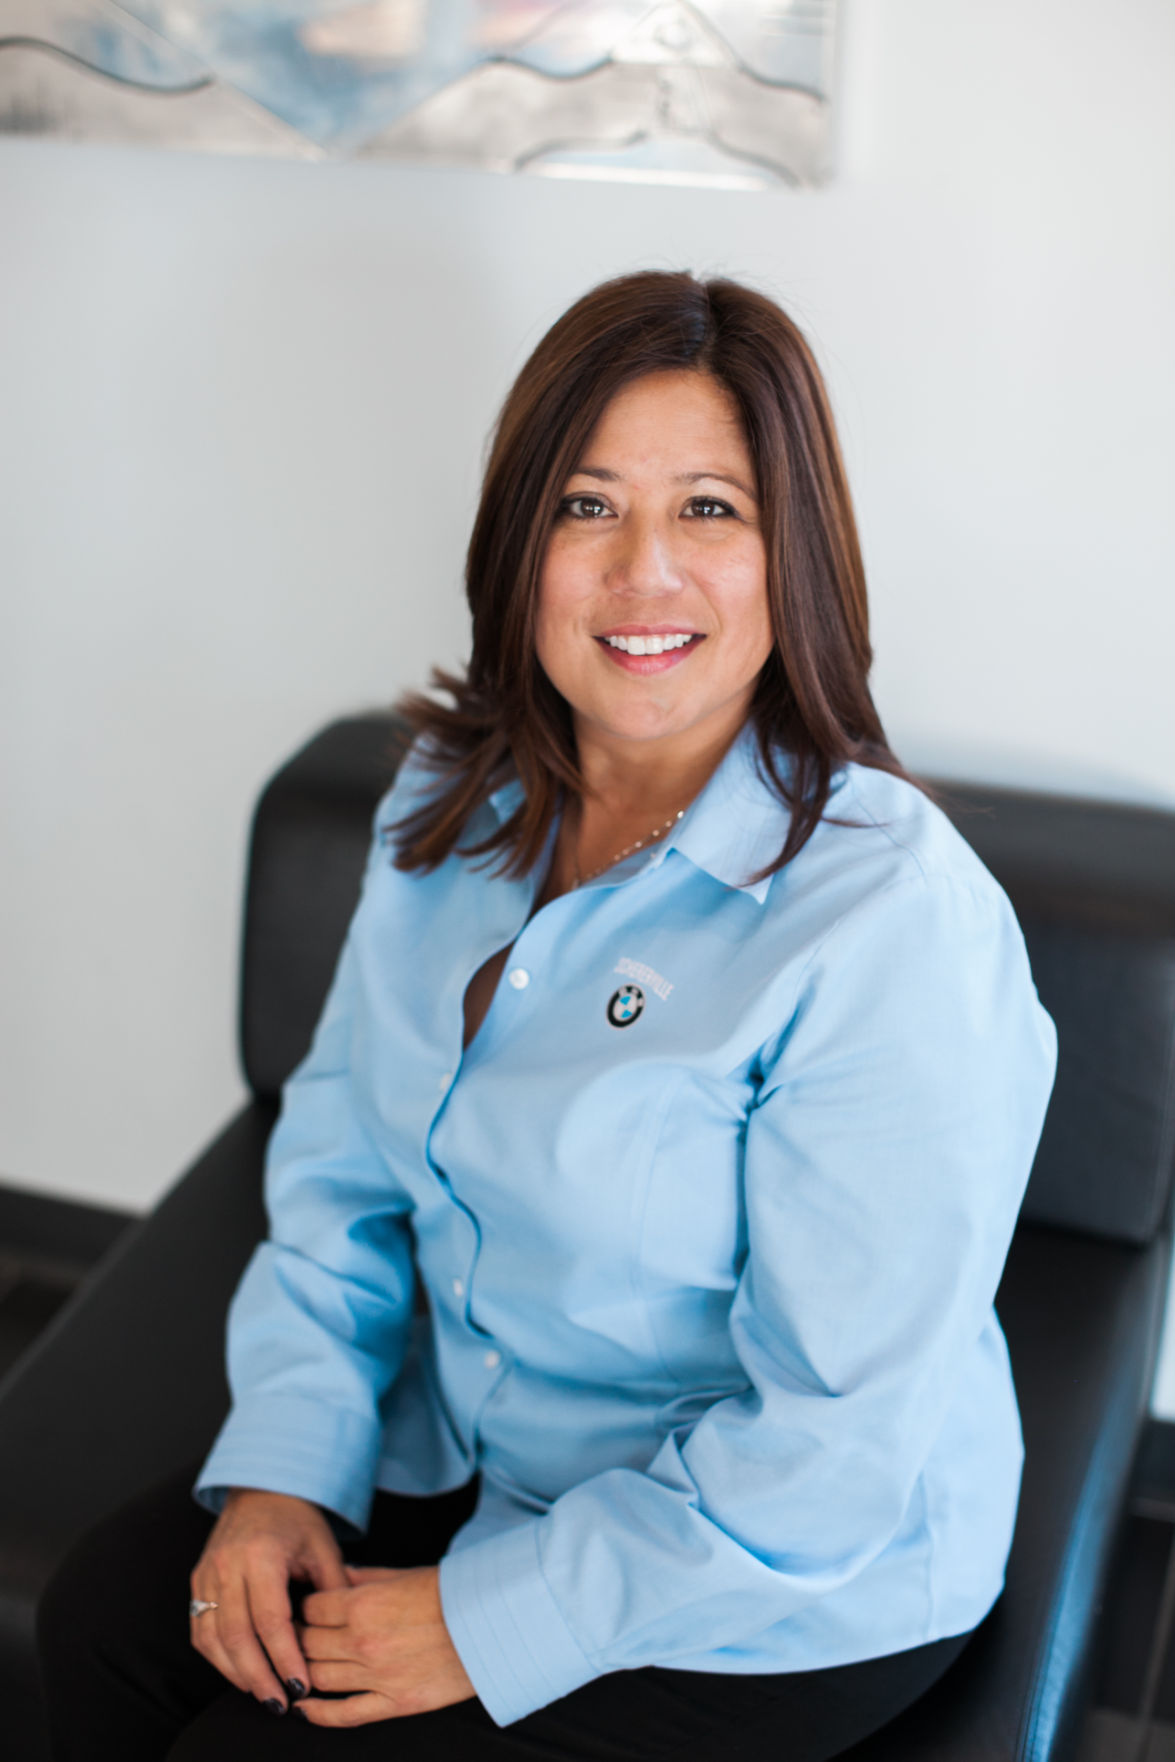 BMW Of Schererville >> 7 female professionals reflect on their challenges and successes | Interviews | nwitimes.com